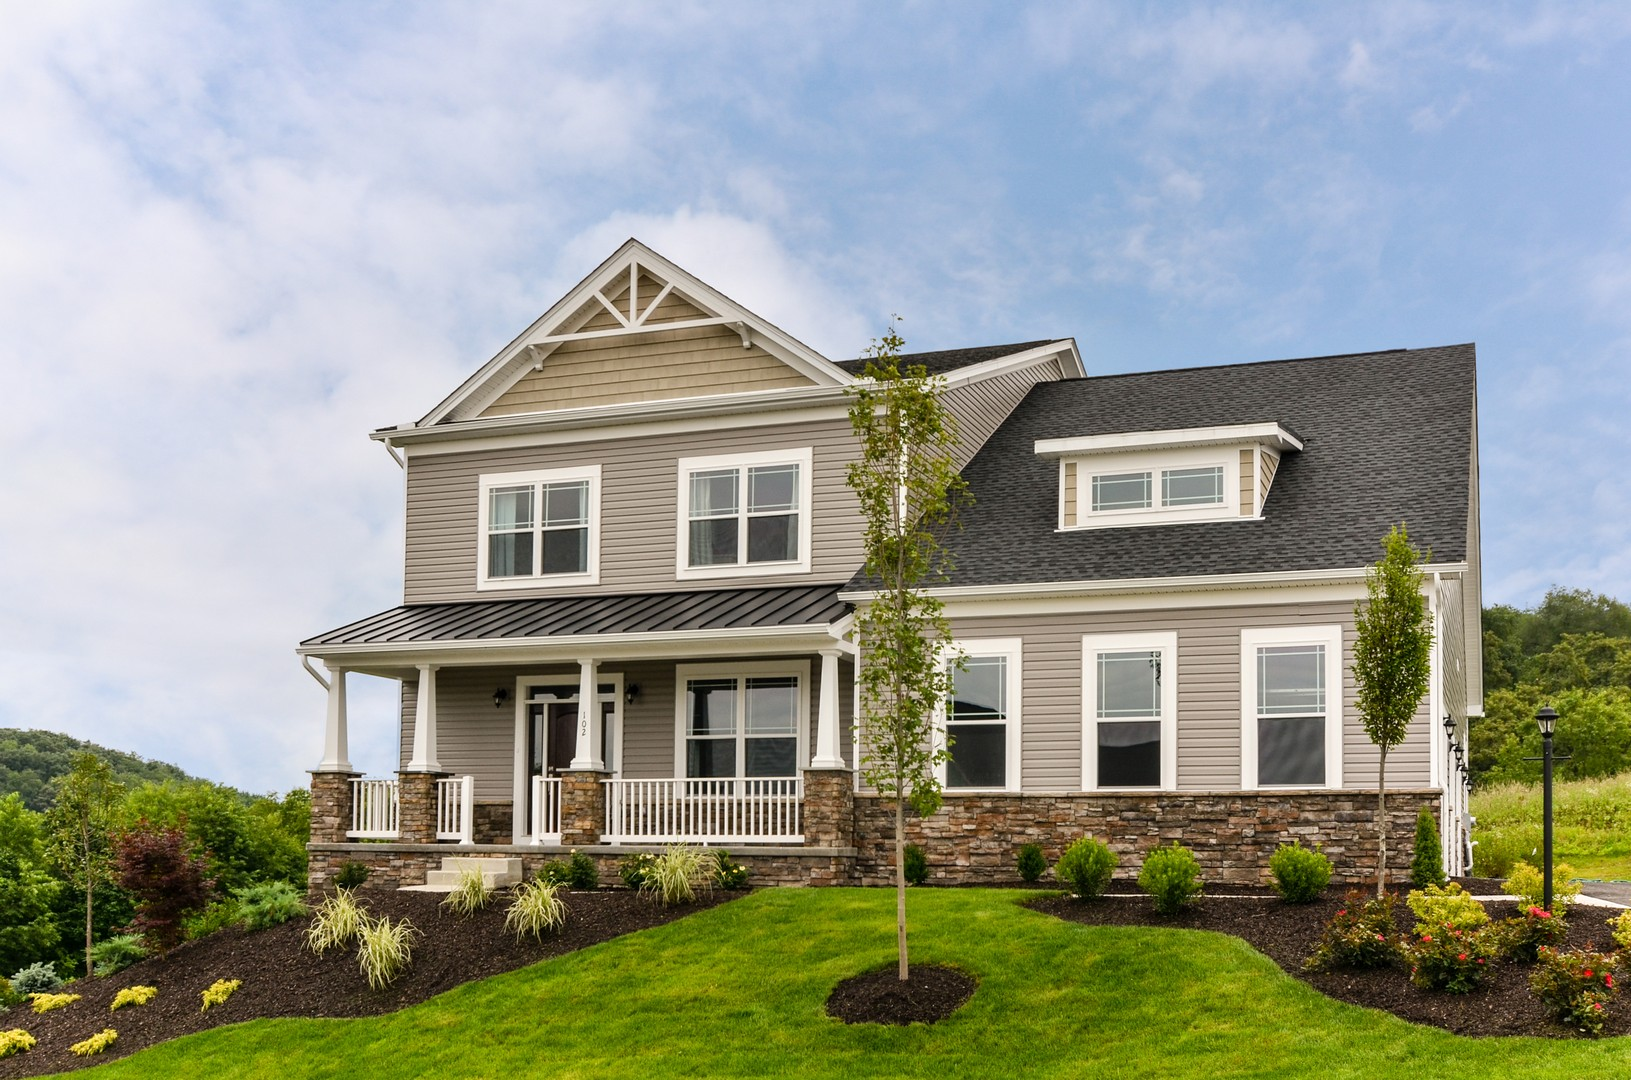 Can High Curb Appeal Really Increase a Home's Perceived Value?